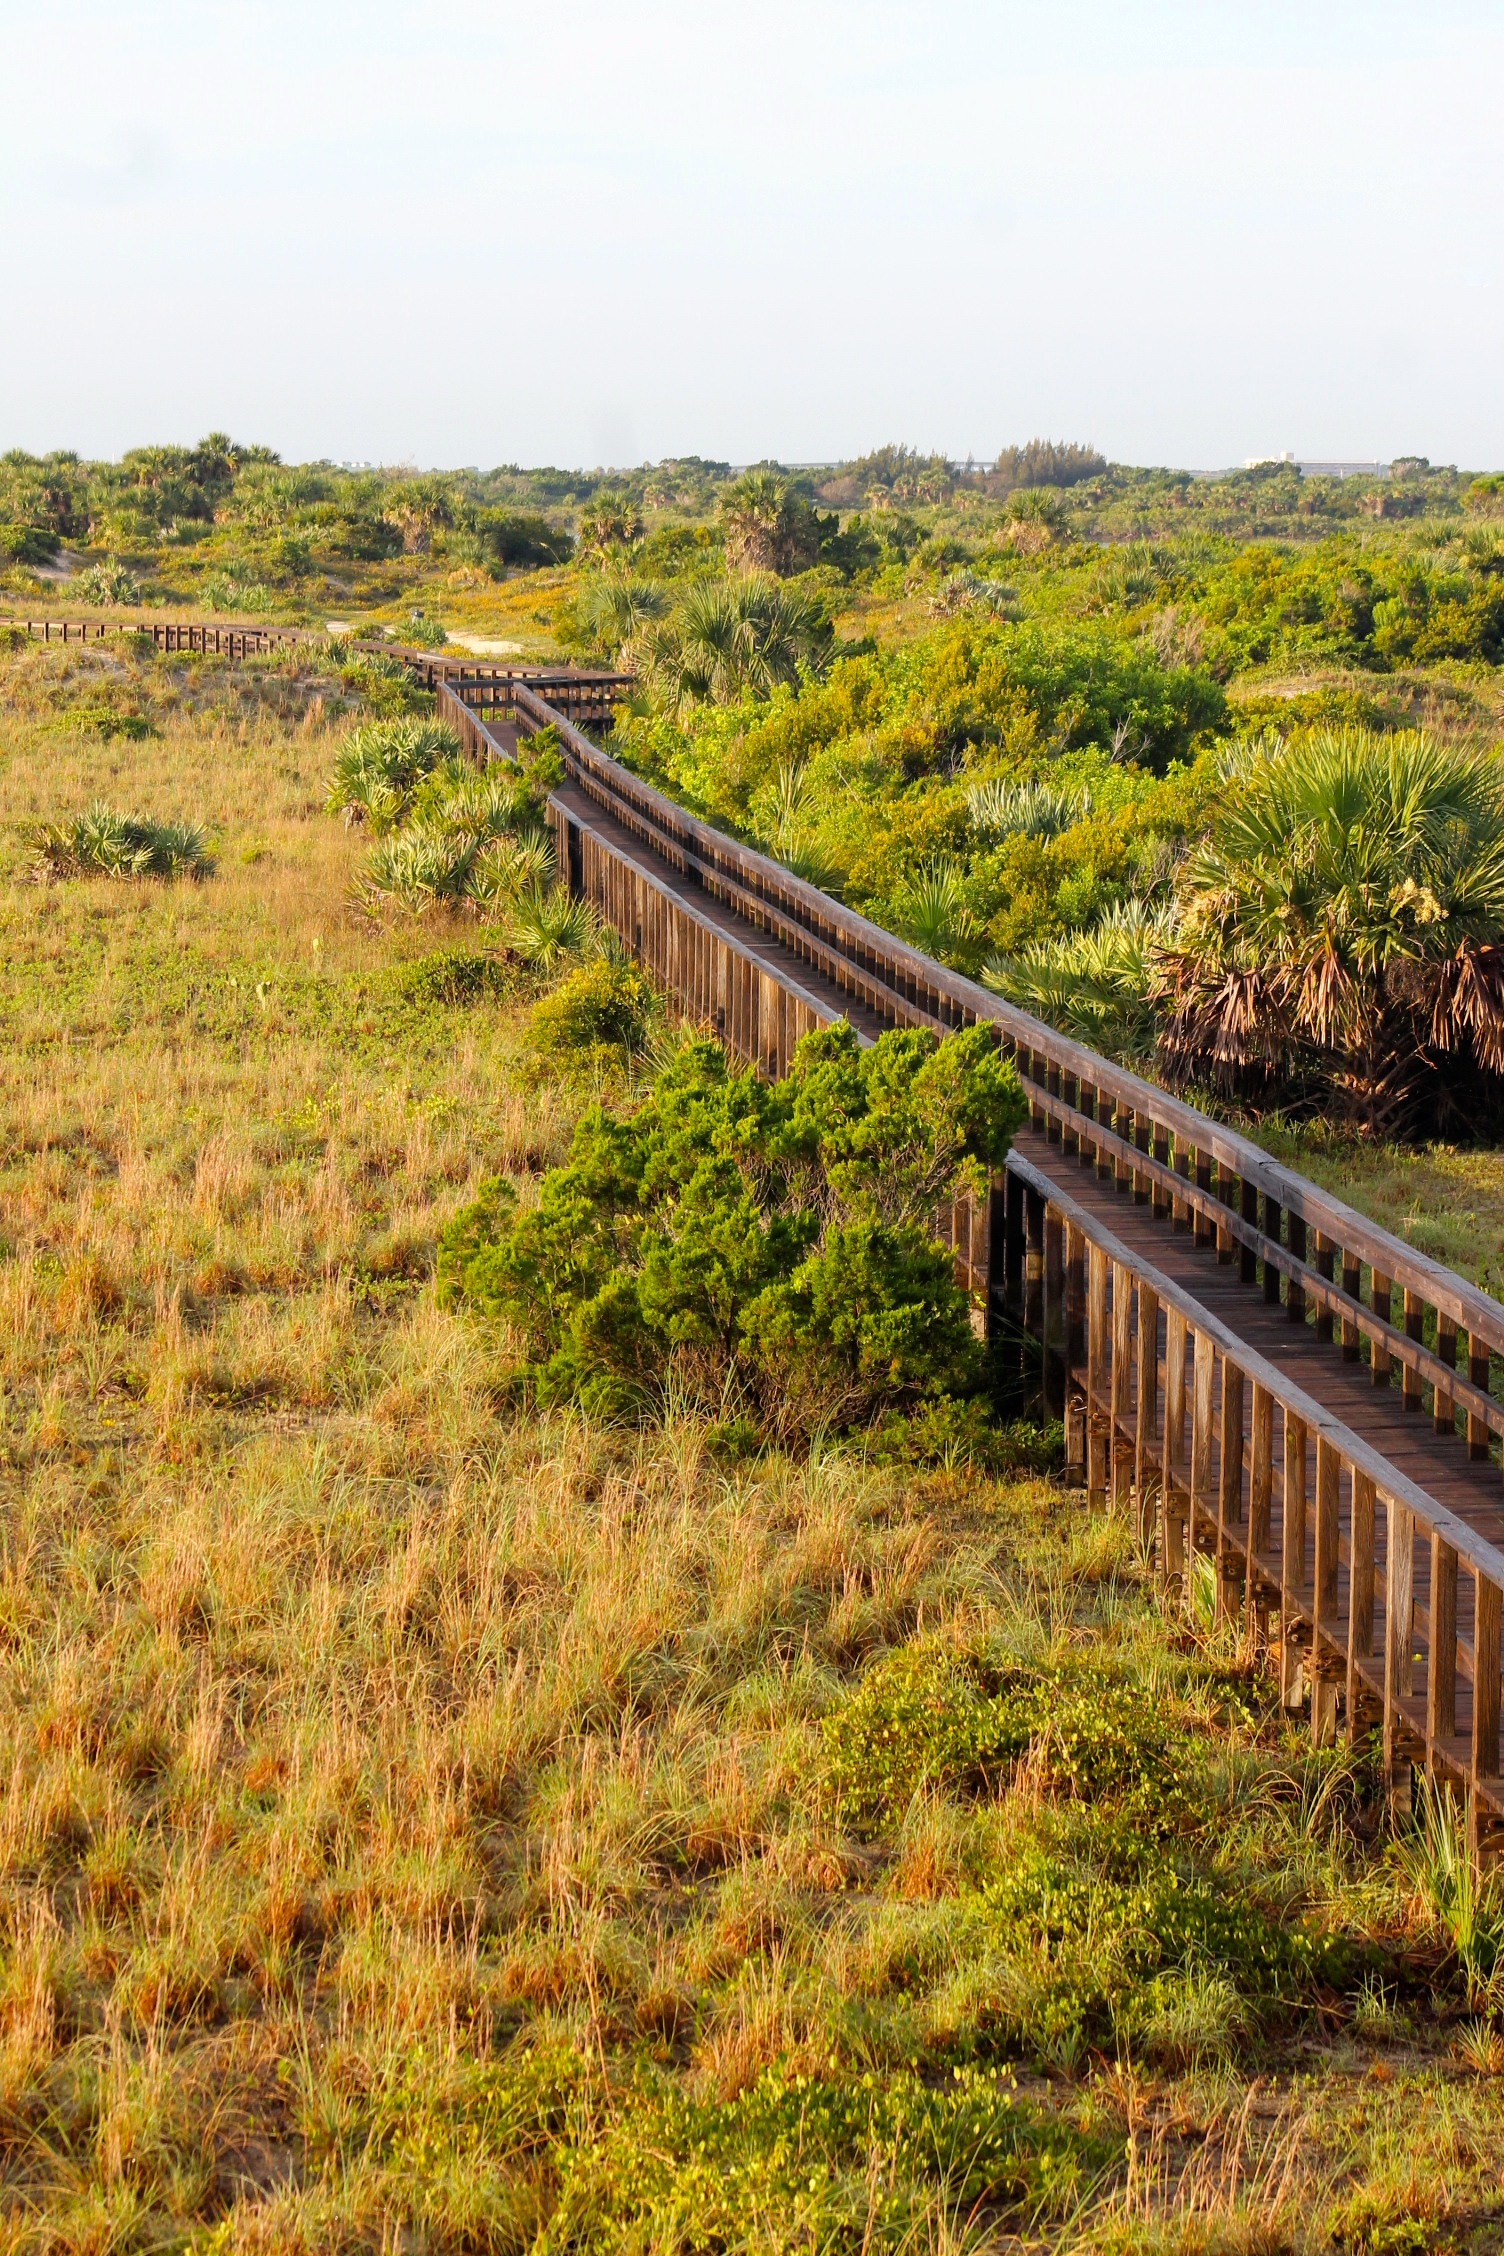 wooden walkway at Dunes Park, view from watch tower